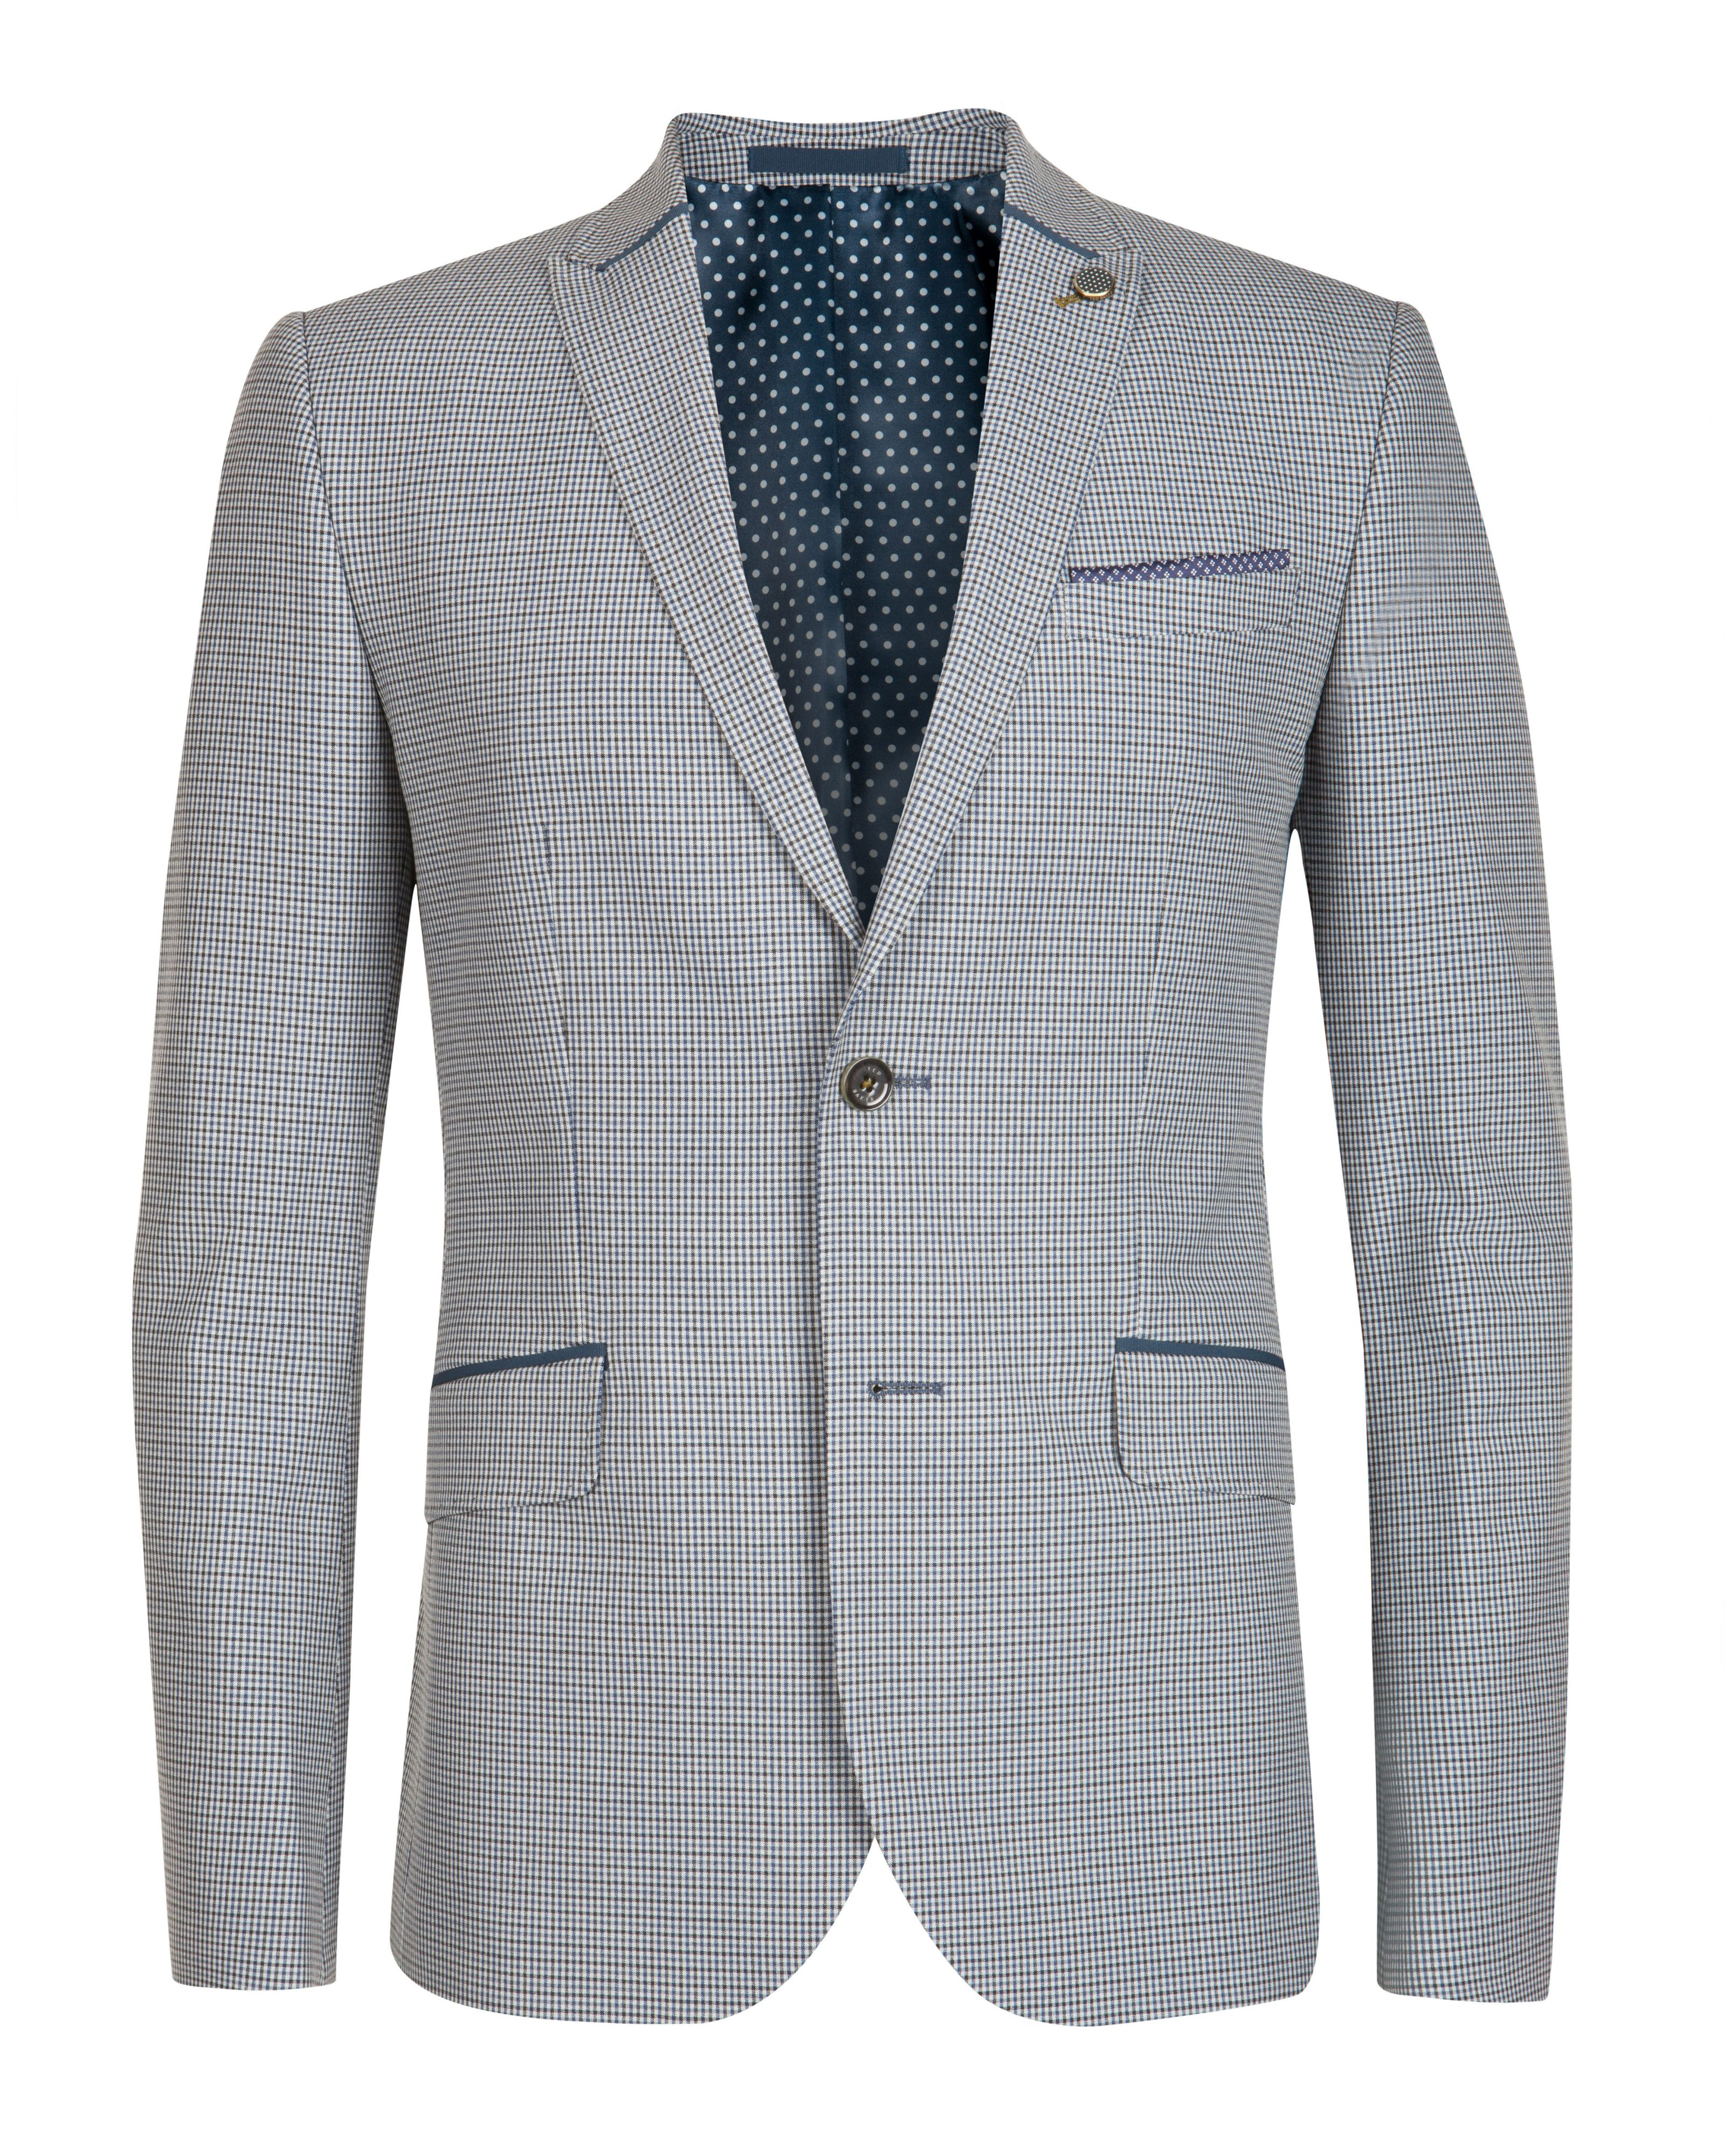 Chivel check peak lapel blazer